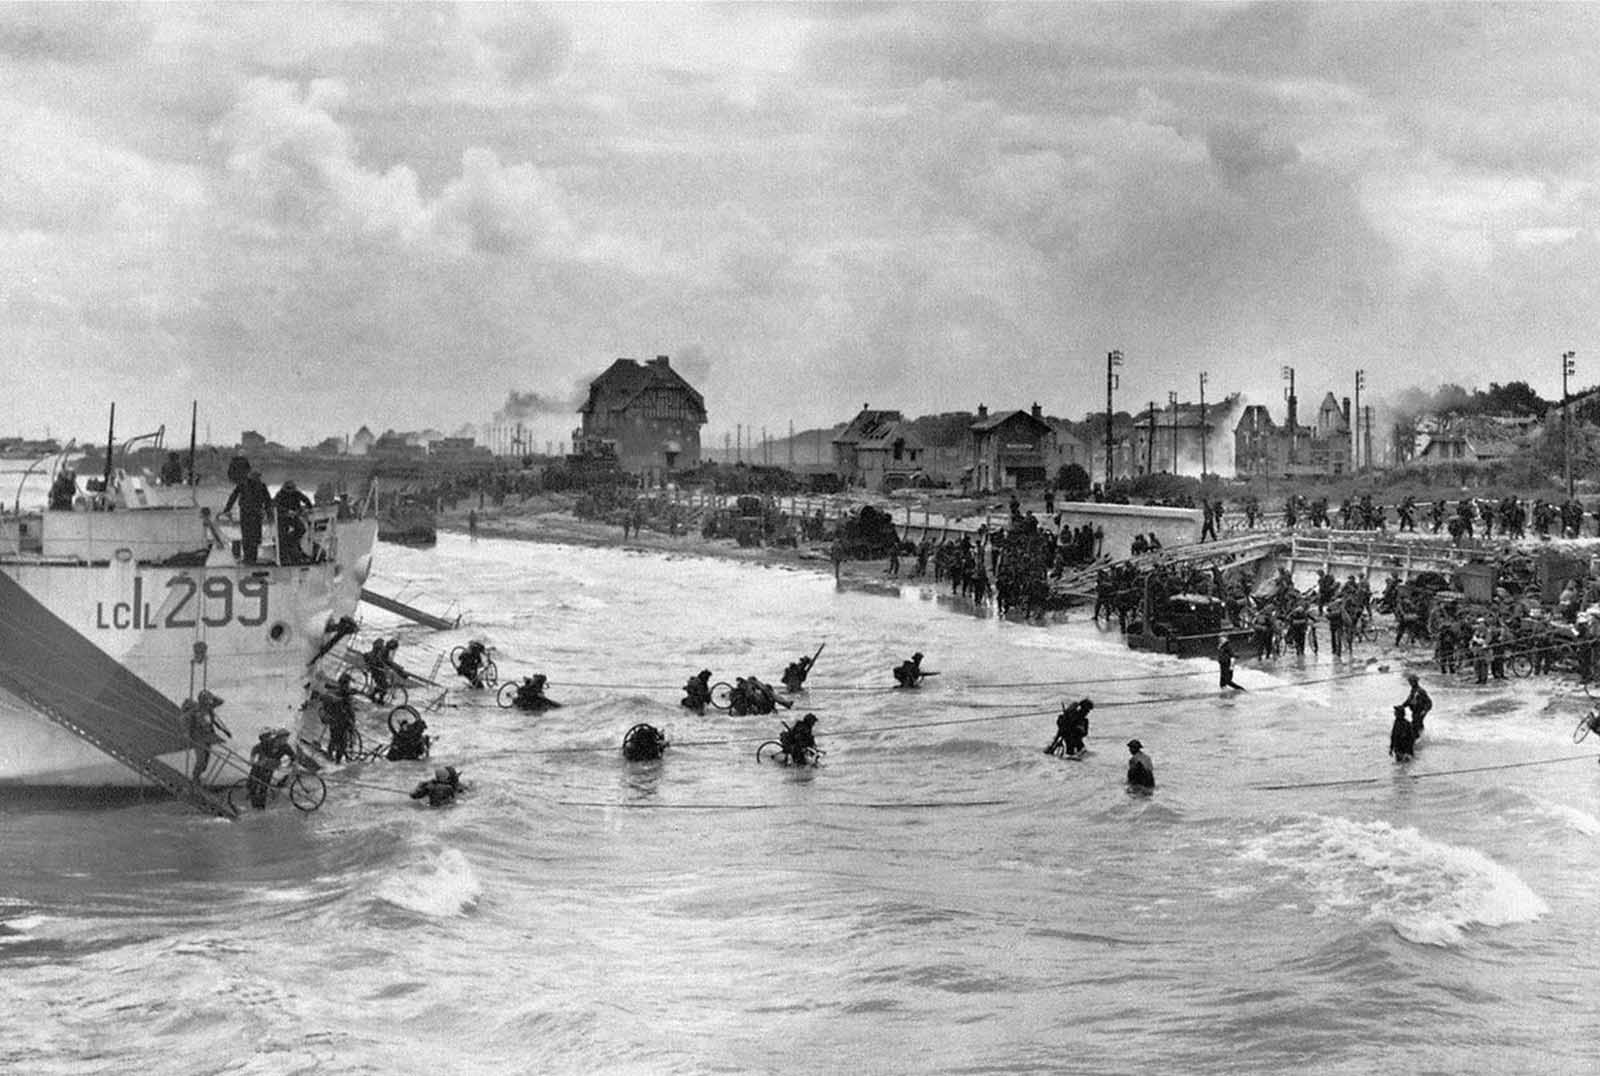 Canadian soldiers from 9th Brigade land with their bicycles at Juno Beach in Bernieres-sur-Mer during D-Day, while Allied forces were storming the Normandy beaches.